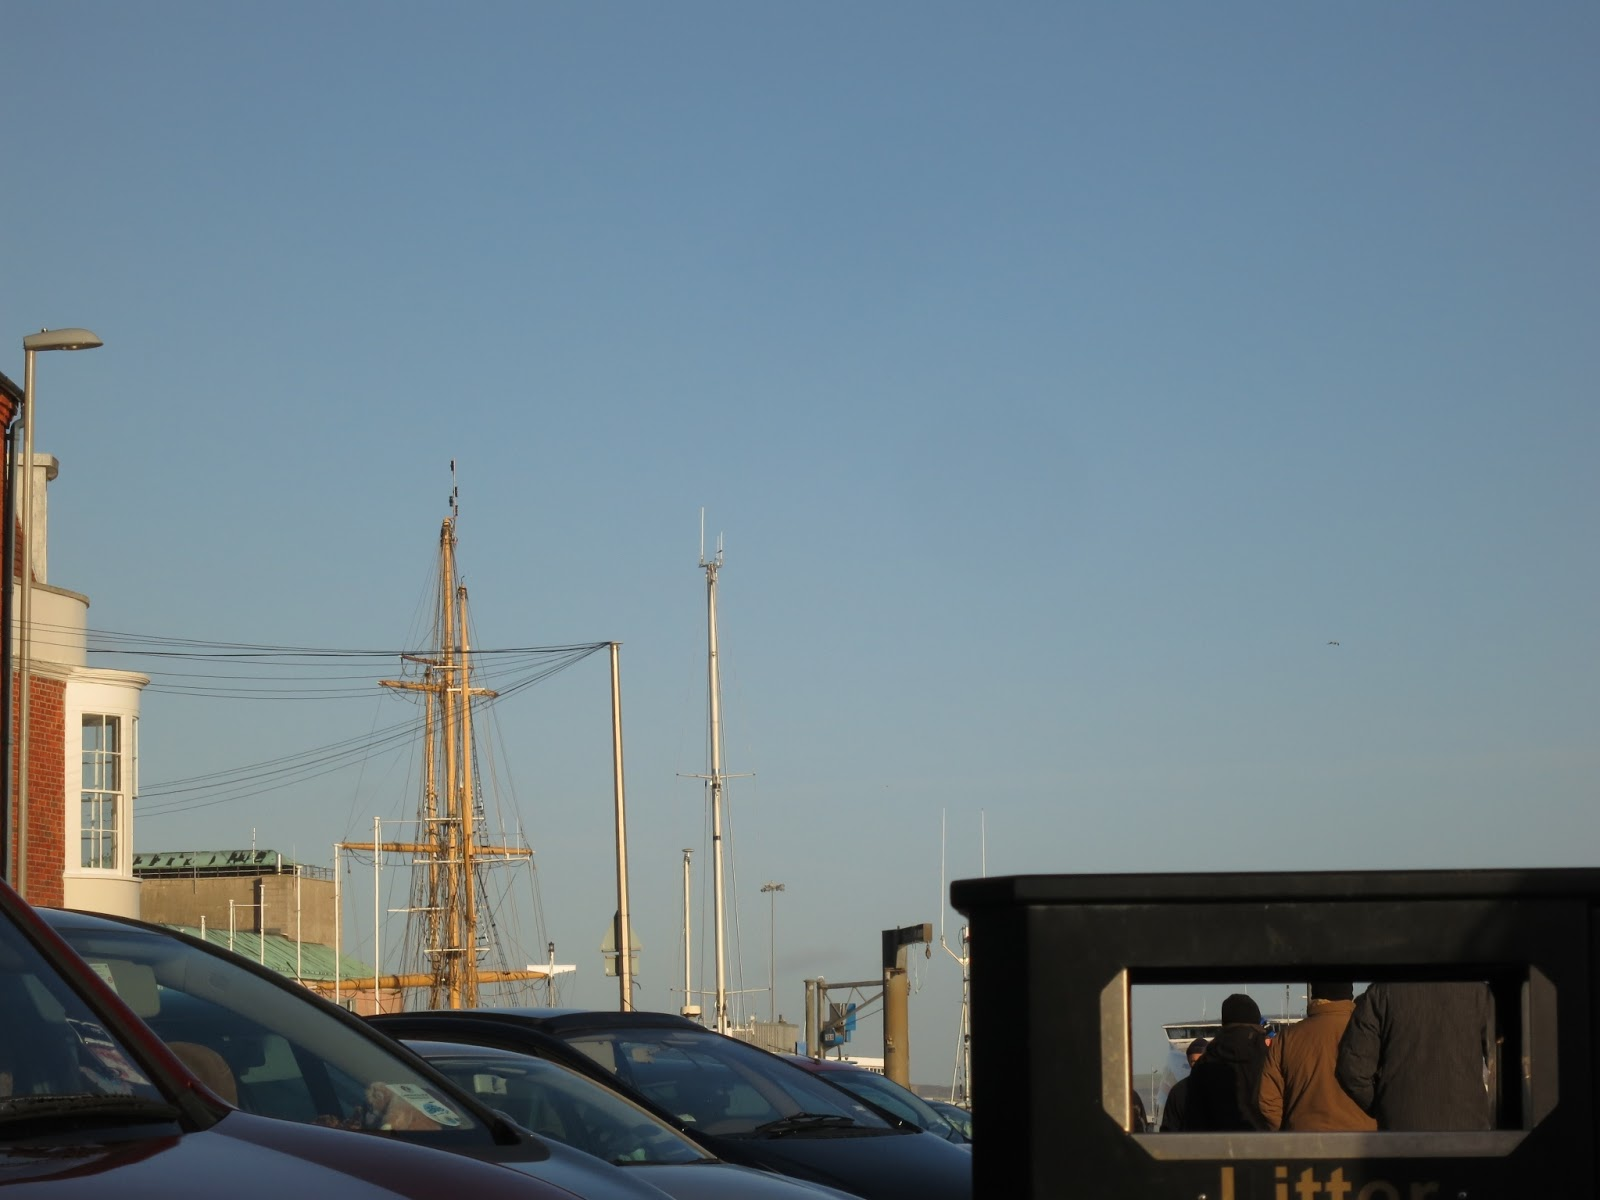 Cars, a tall ship, a black street bin with people seen through the opening.